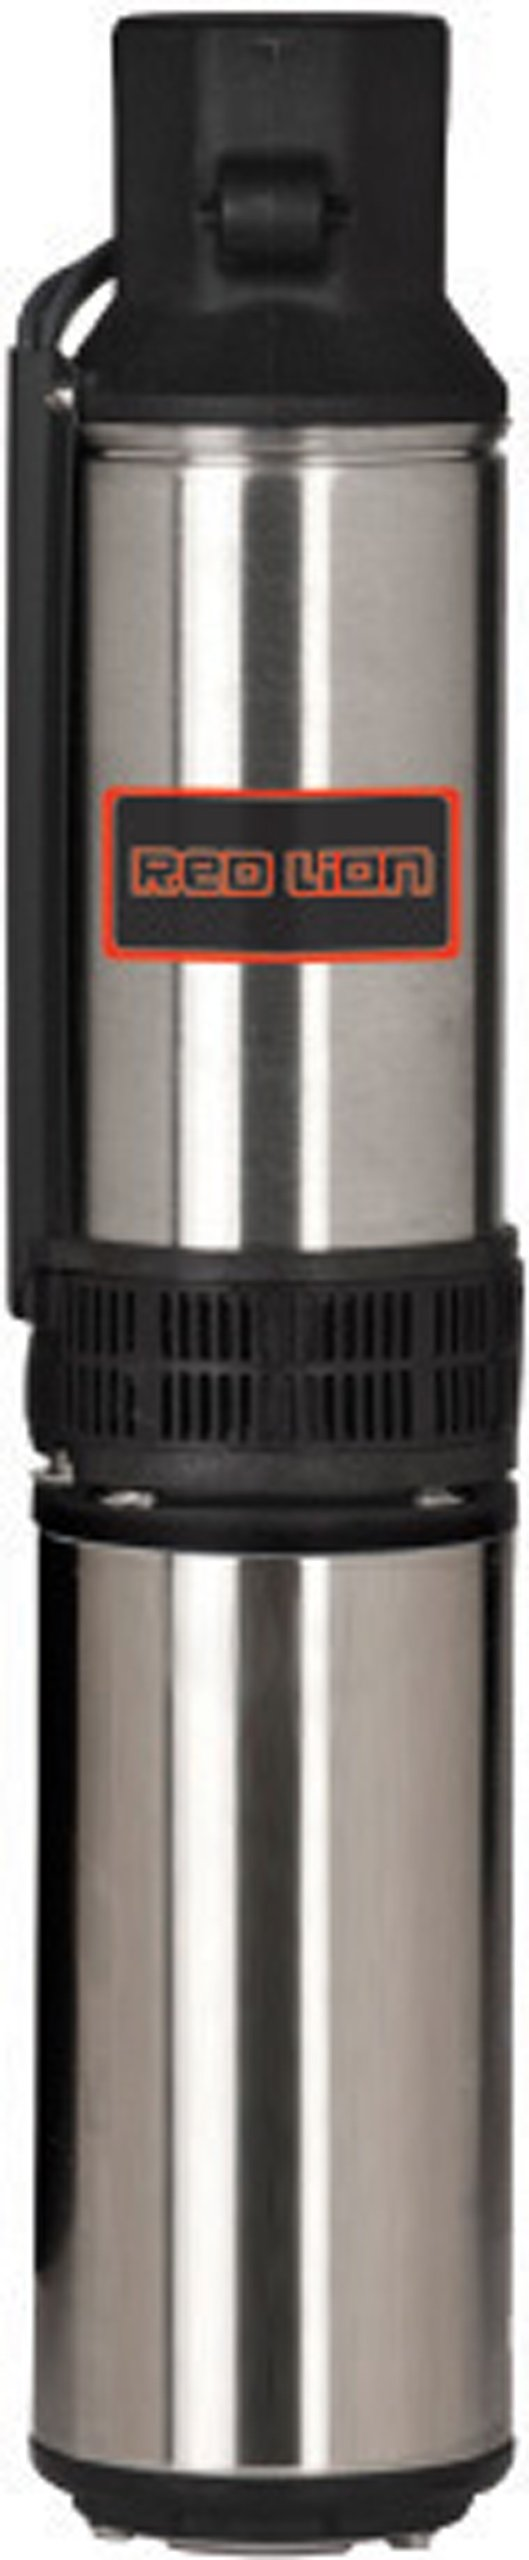 Red Lion 14942405 Submersible Deep Well Pump with Control Box, 1/2-HP 12-GPM 3-Wire 230-Volt, Stainless Steel by Red Lion